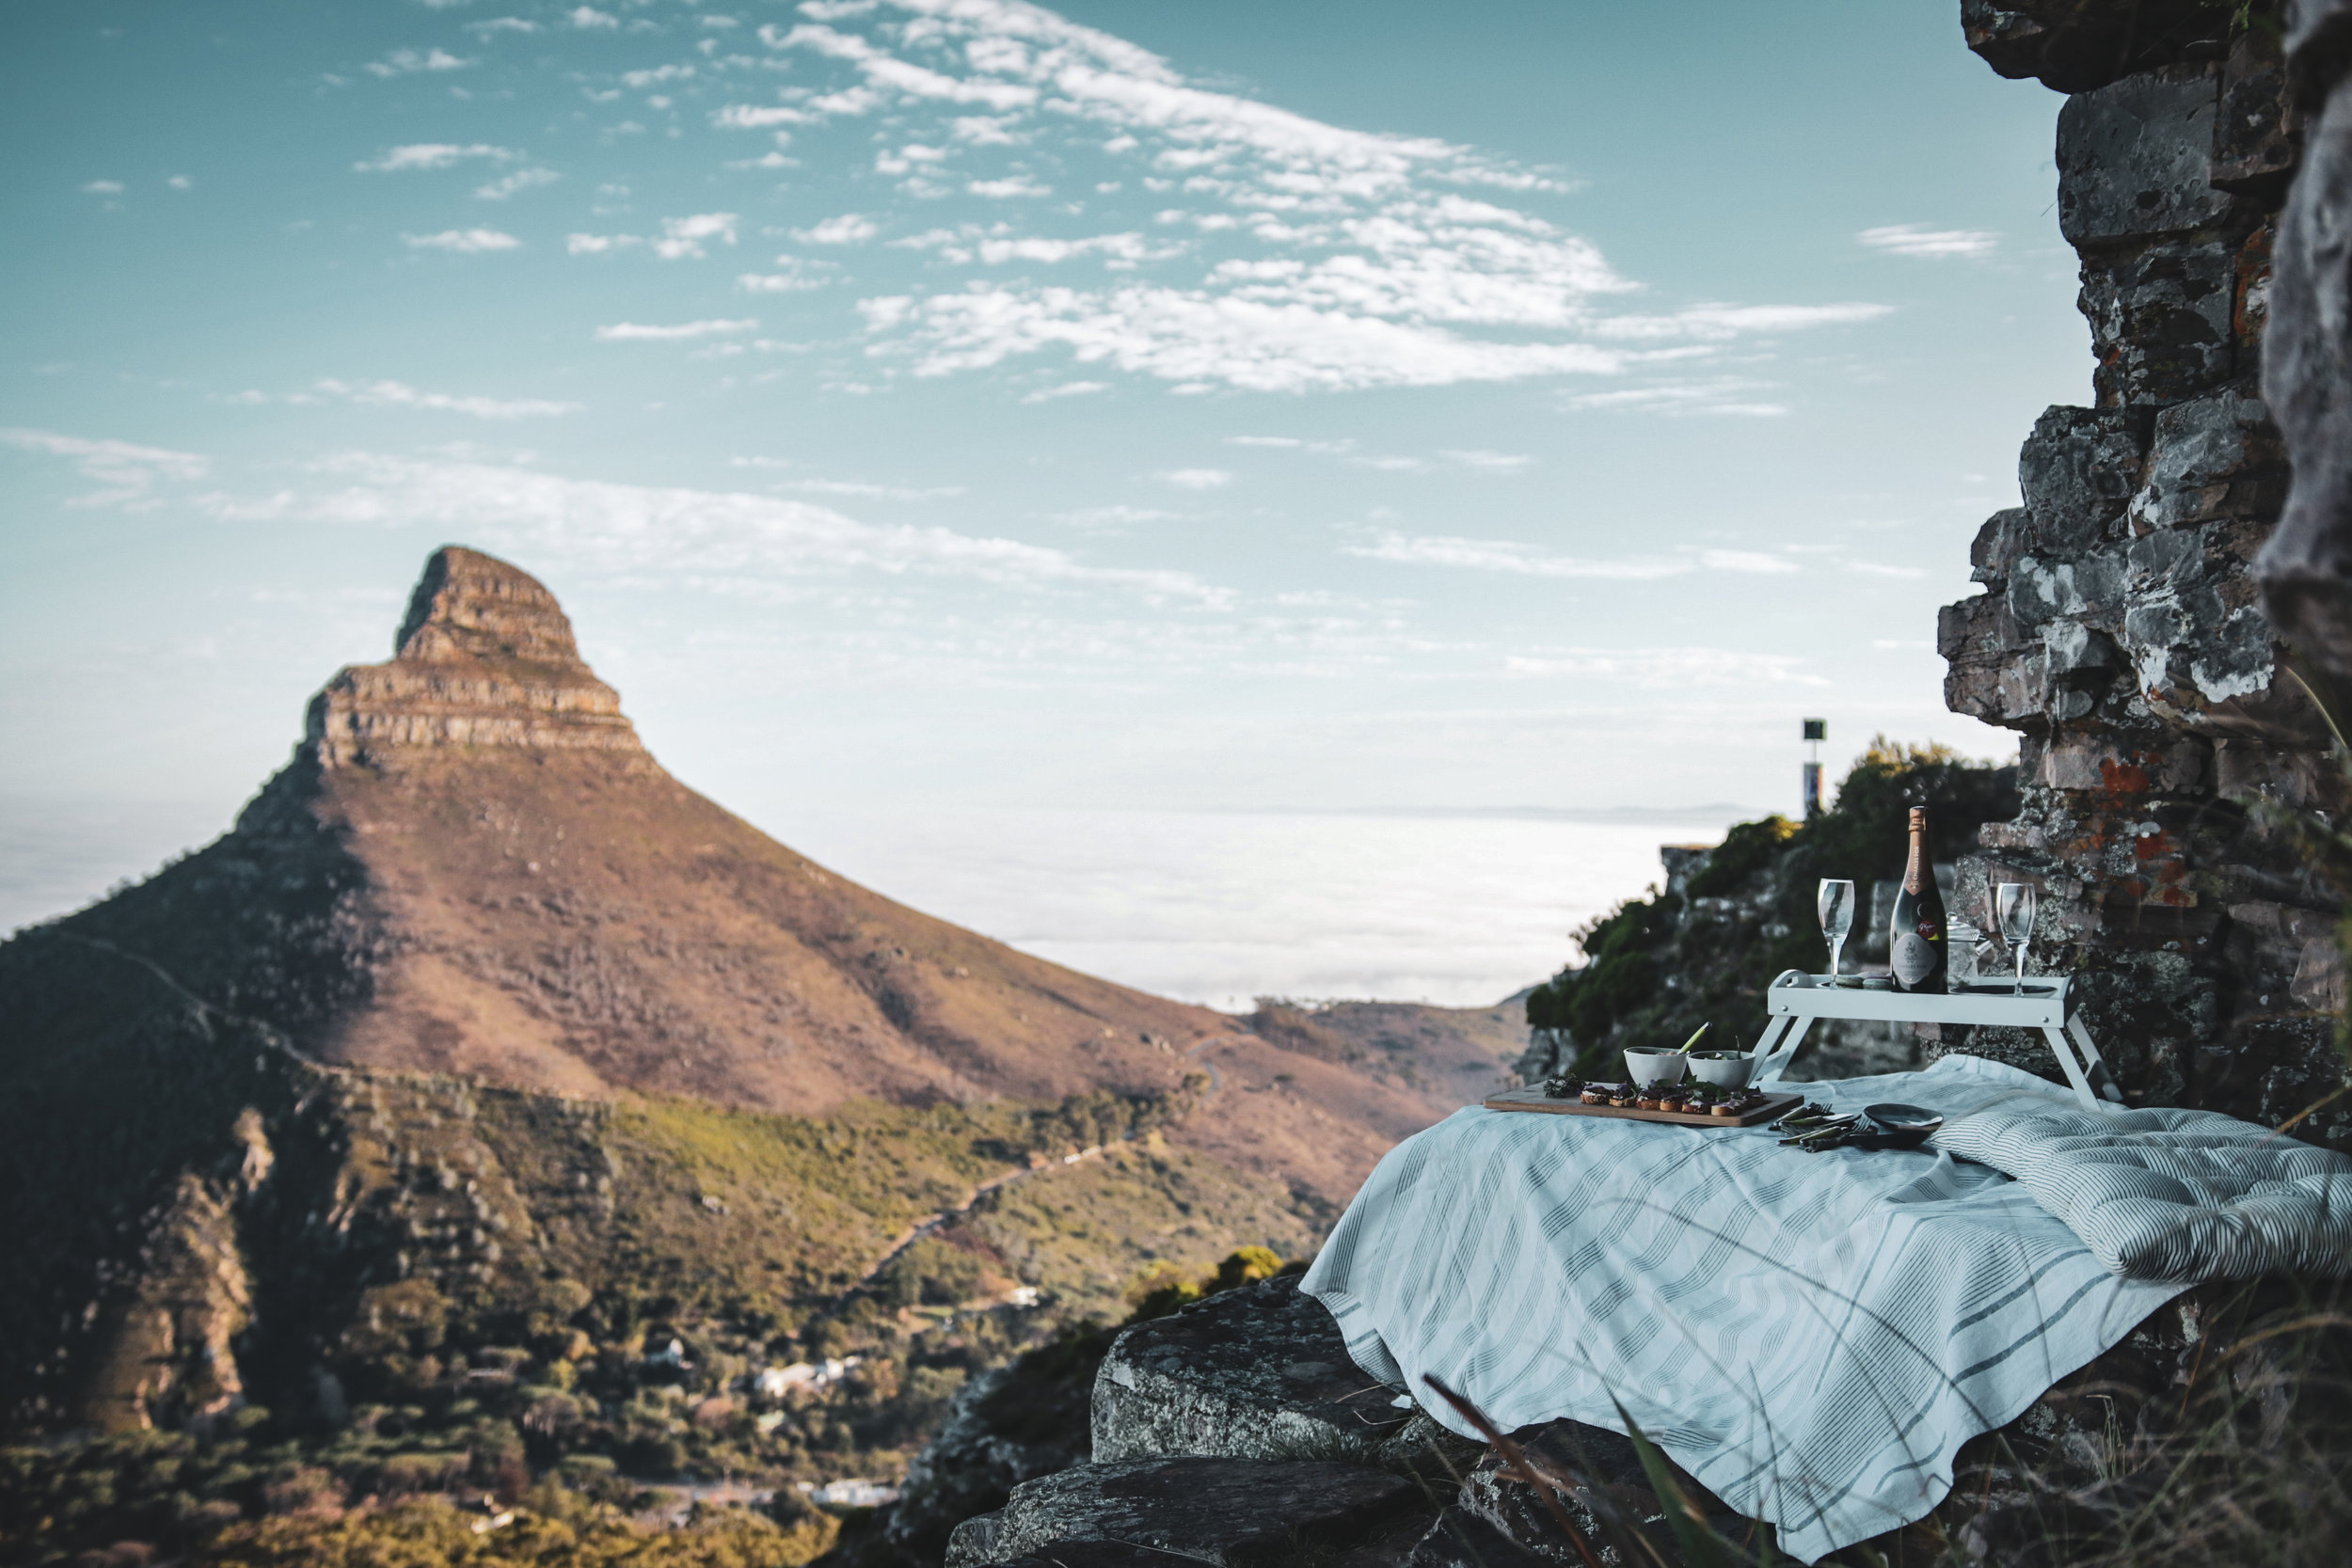 Micro Adventures - Hikes, picnics & sundowners at secluded secret spots.